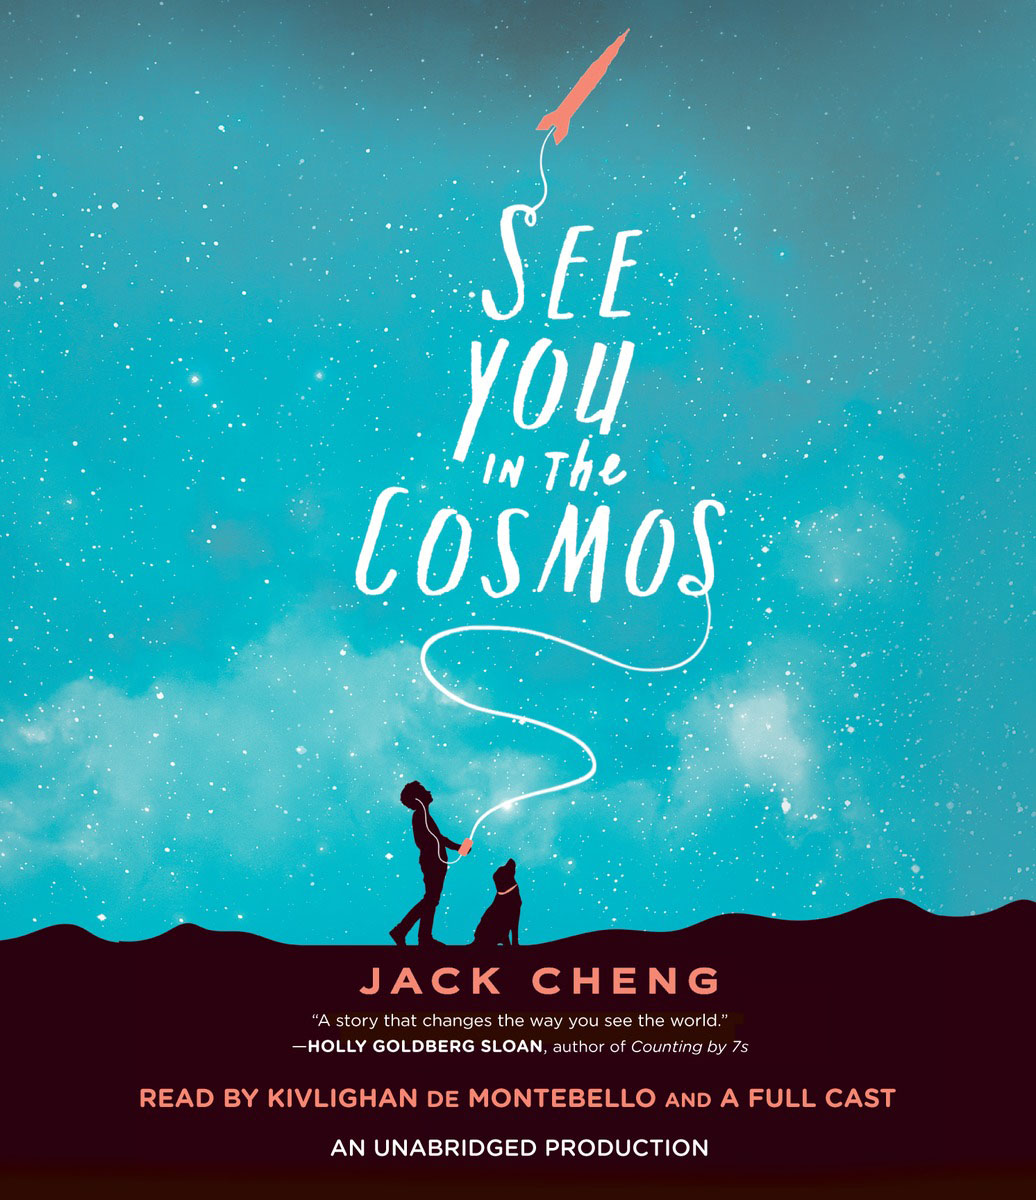 See You in the Cosmos the long cosmos